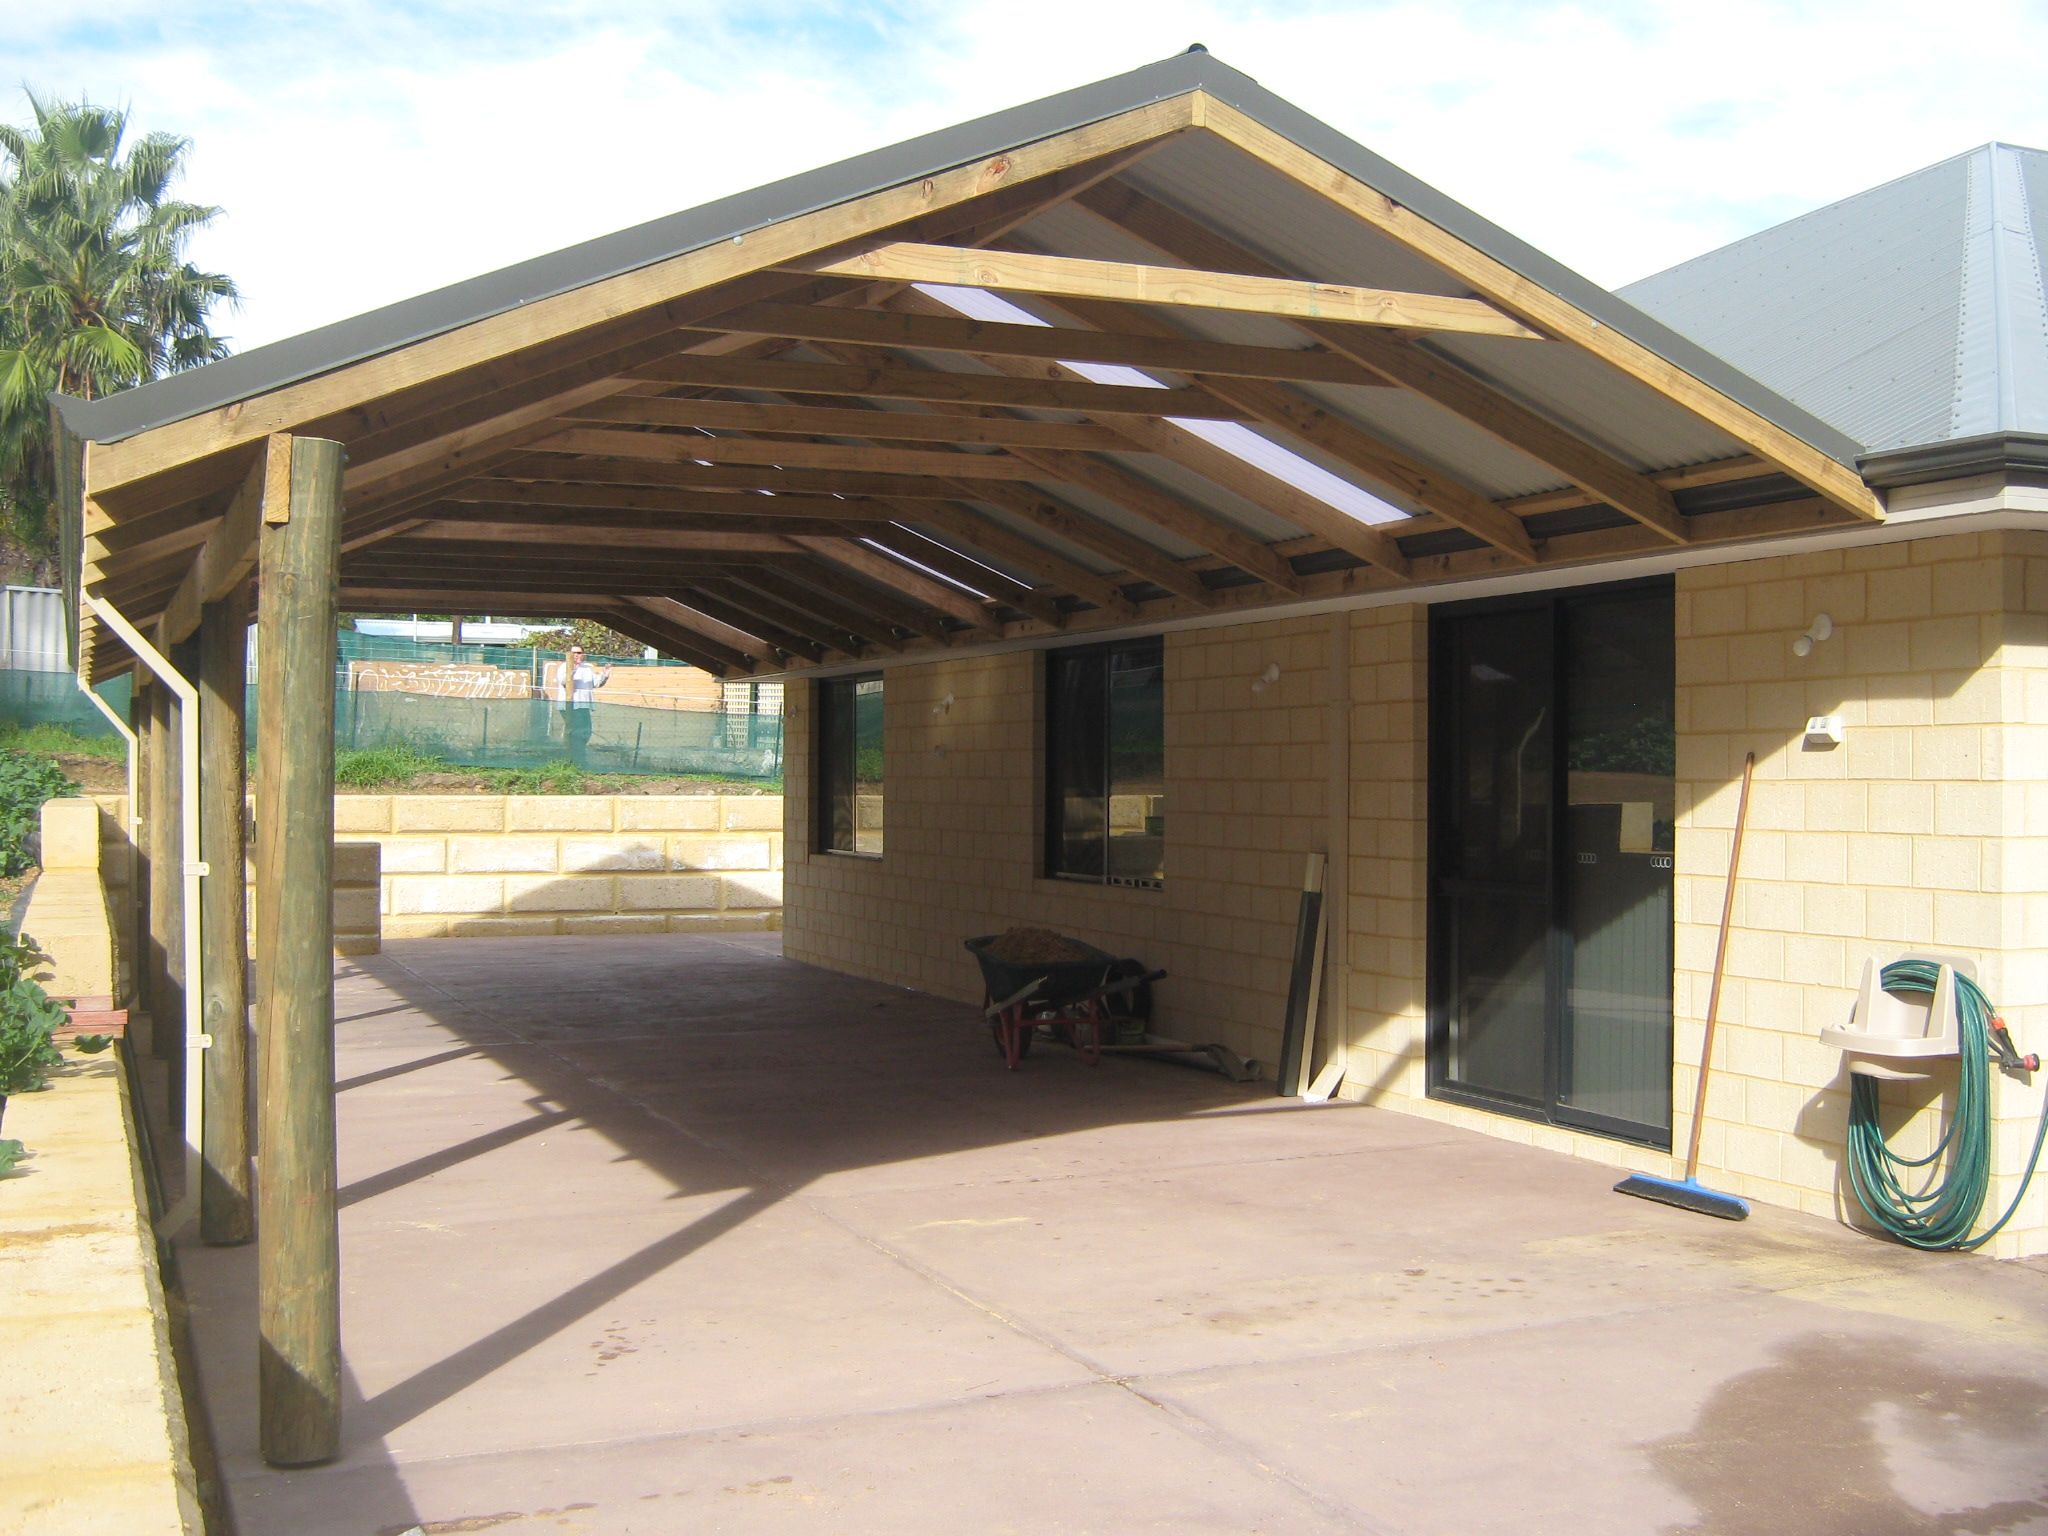 Exteriors : Metal Roof Panels Patio Covers Insulated Patio ... on Patio Cover Ideas Uk id=63803